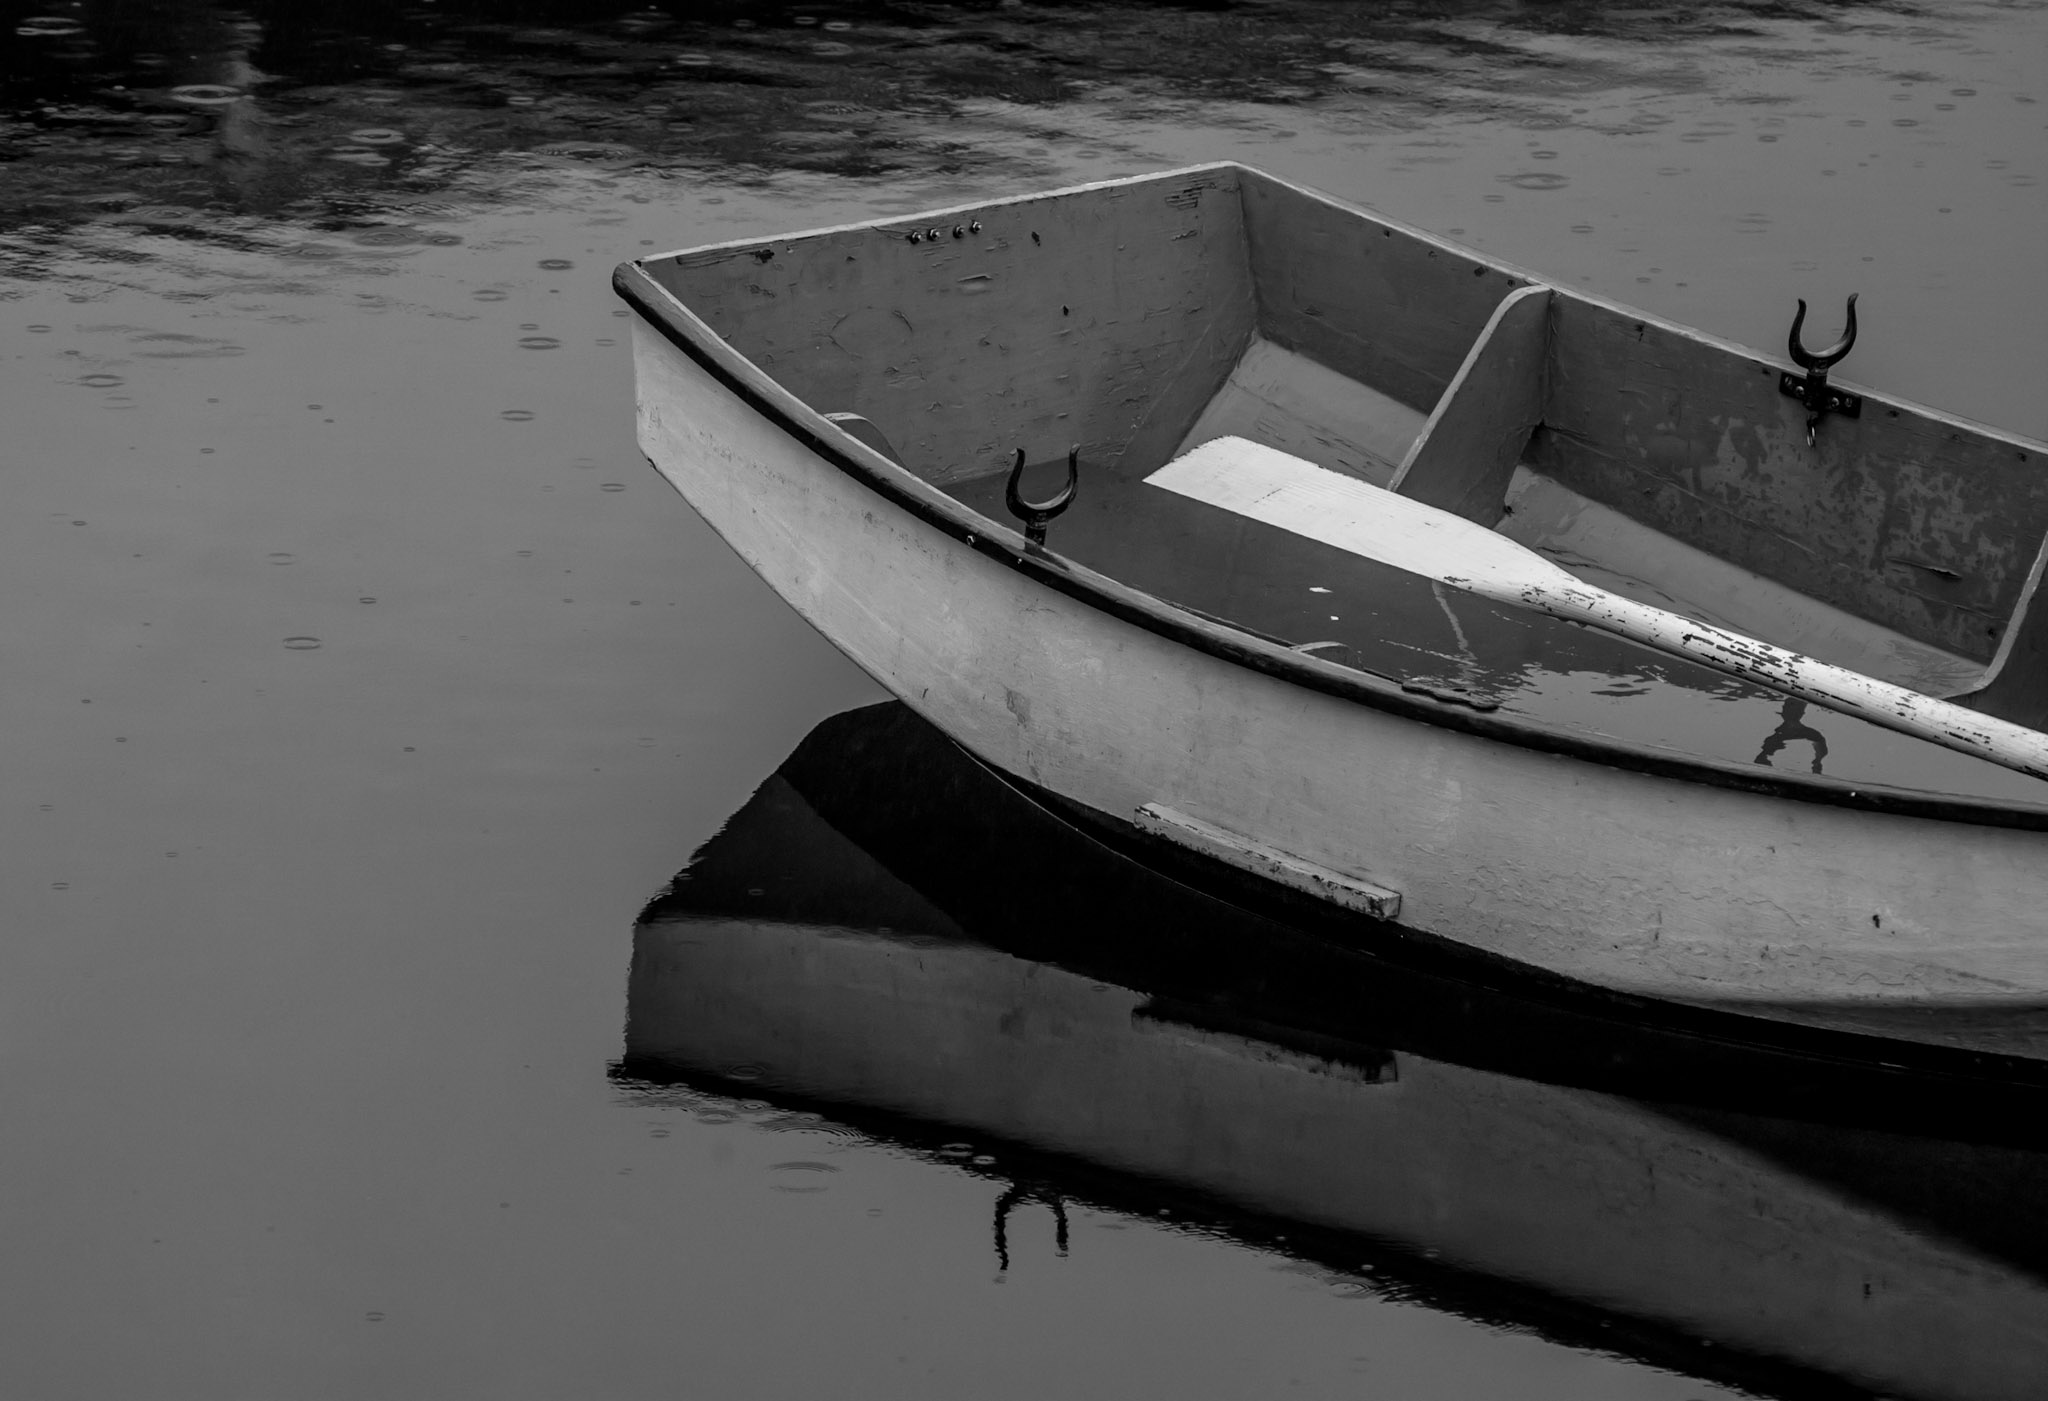 Dinghy at Gig Harbor, Washington